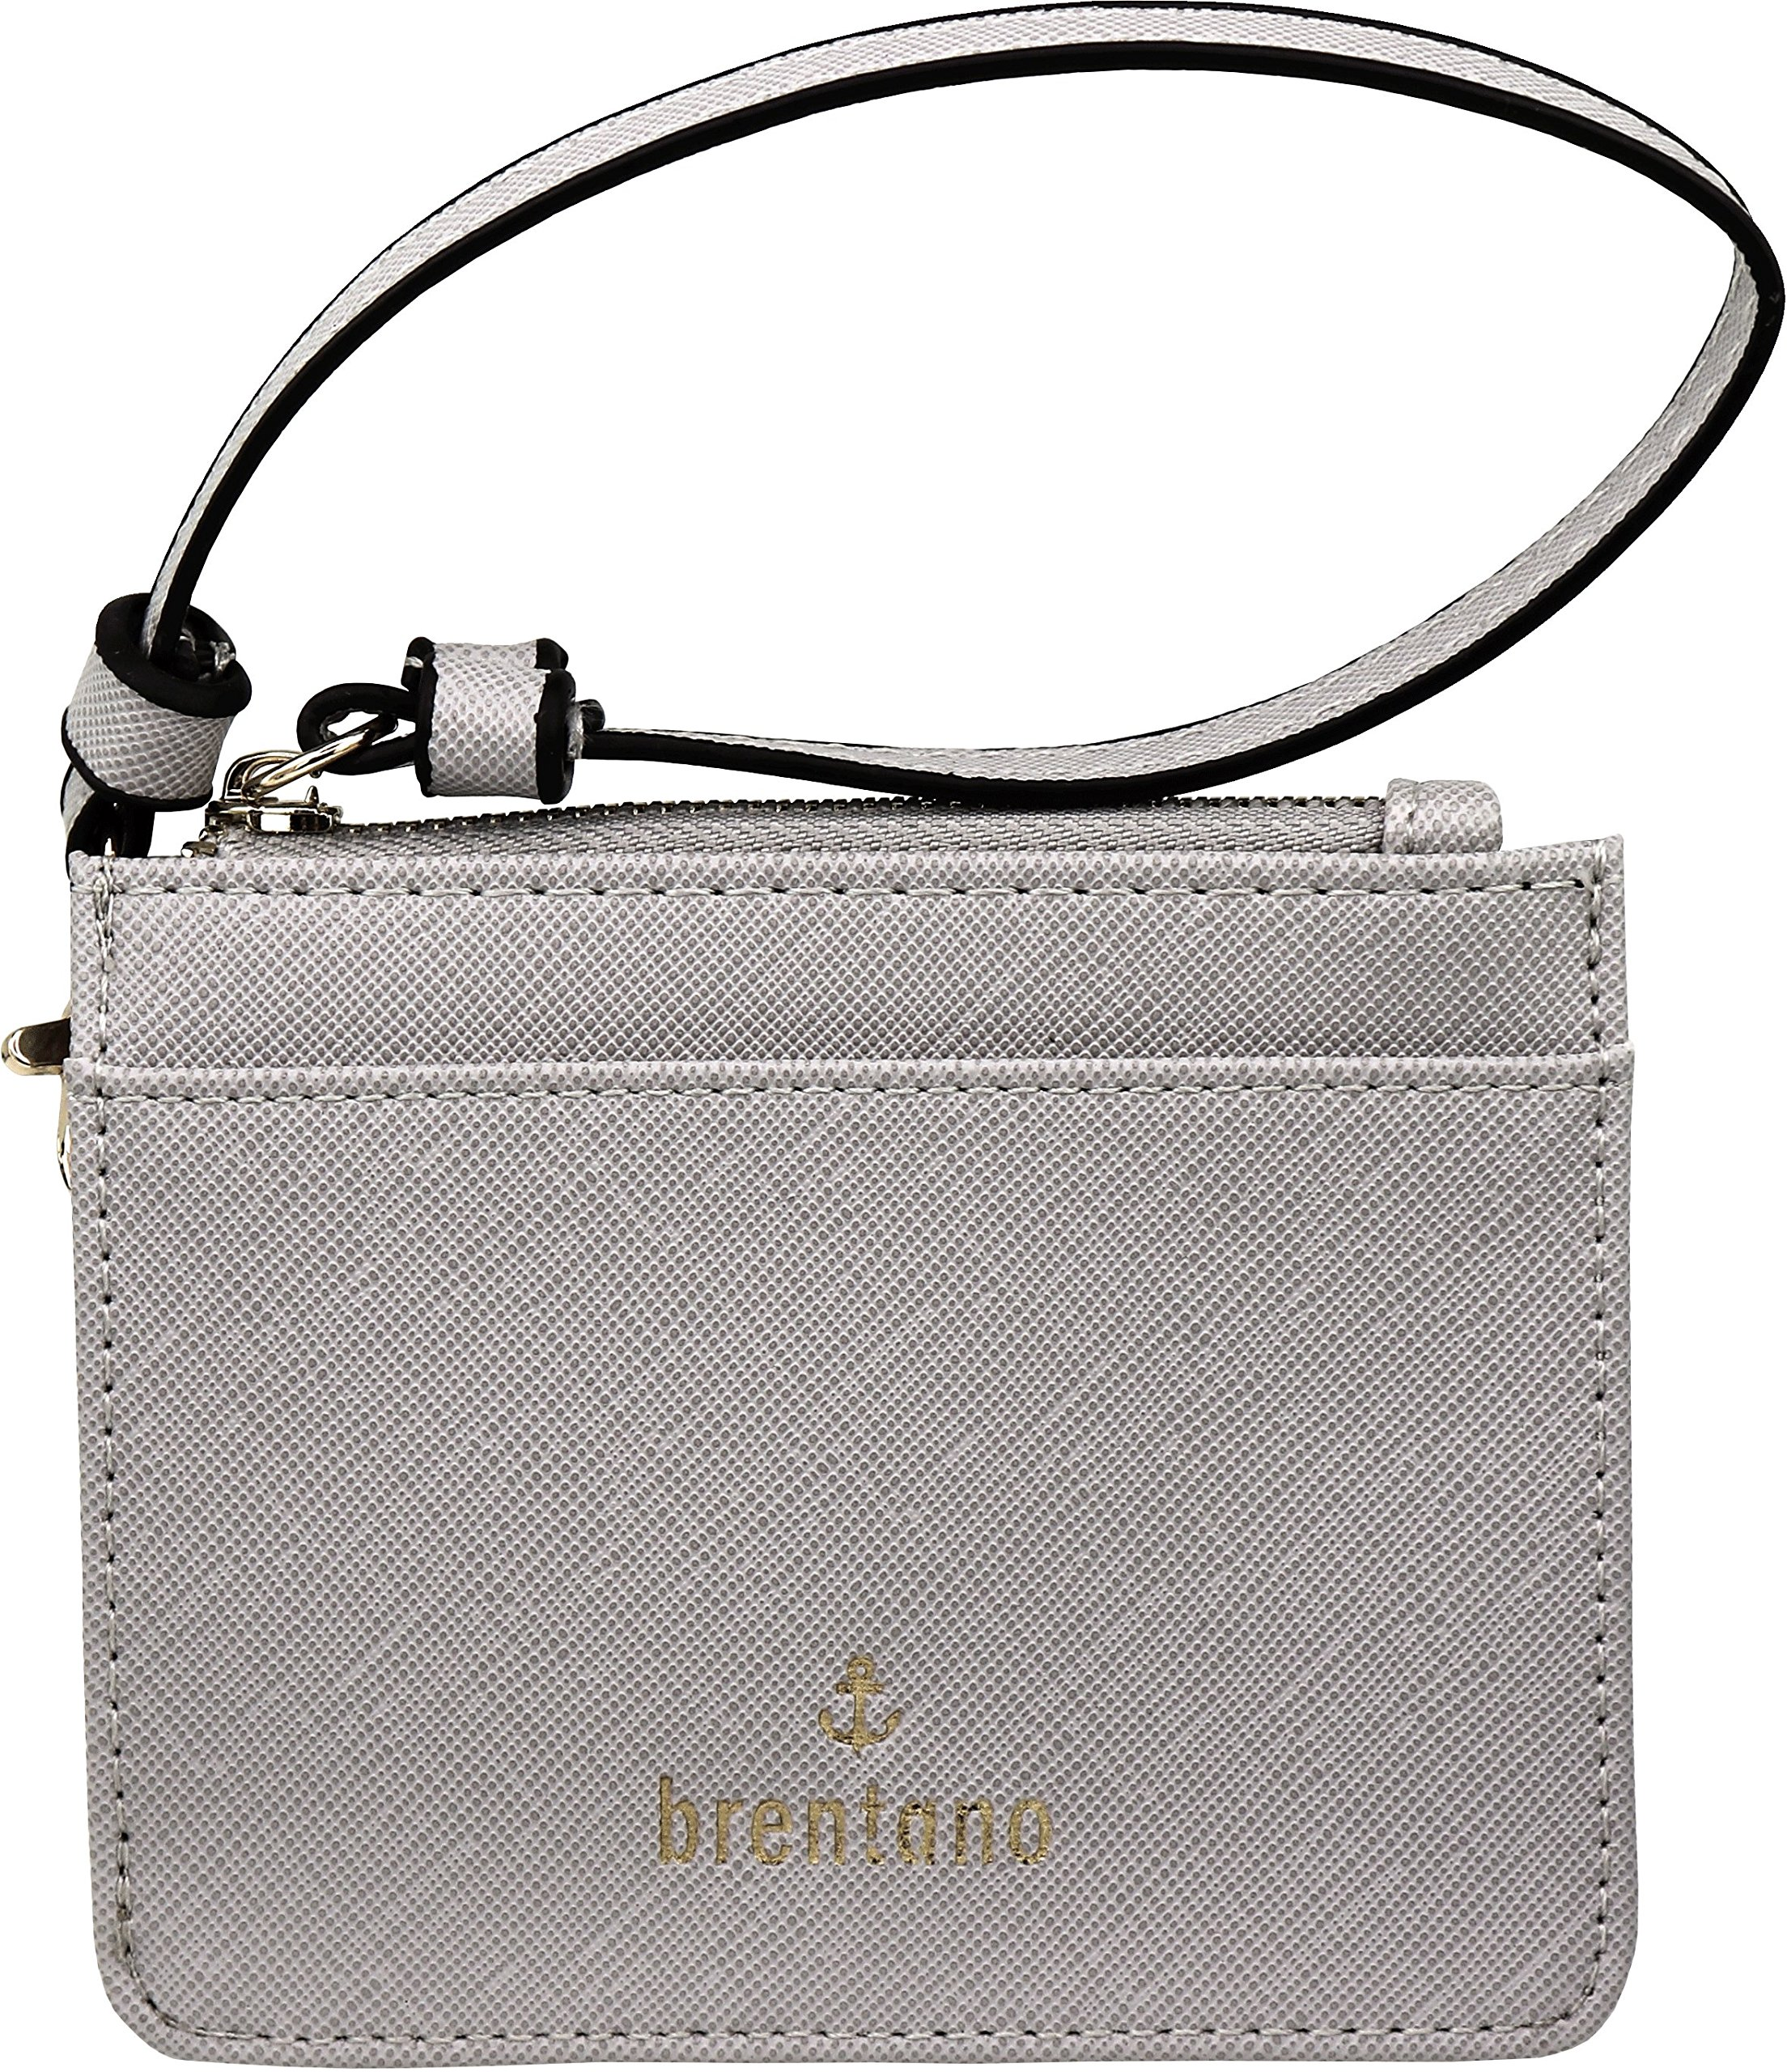 B BRENTANO Vegan Saffiano Leather Slim ID Credit Card Case with Wristlet Strap (Gray)